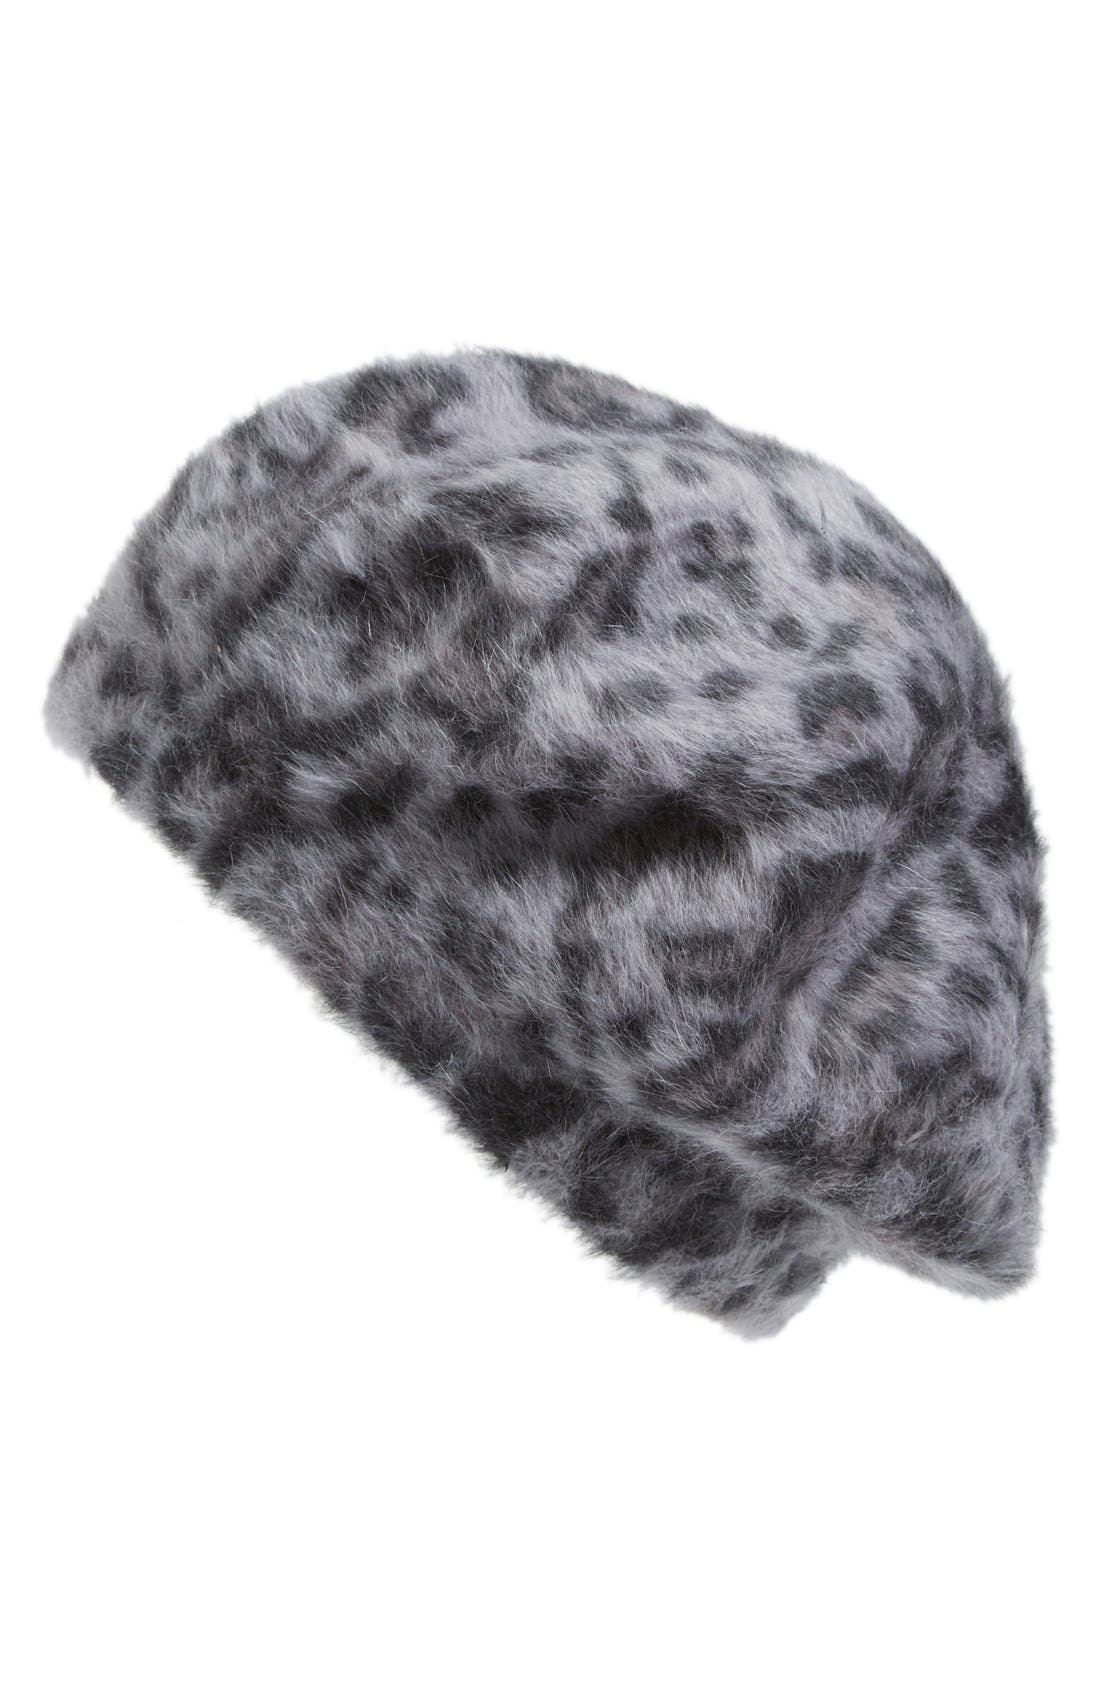 Alternate Image 1 Selected - Parkhurst 'Angelica' Angora Beret